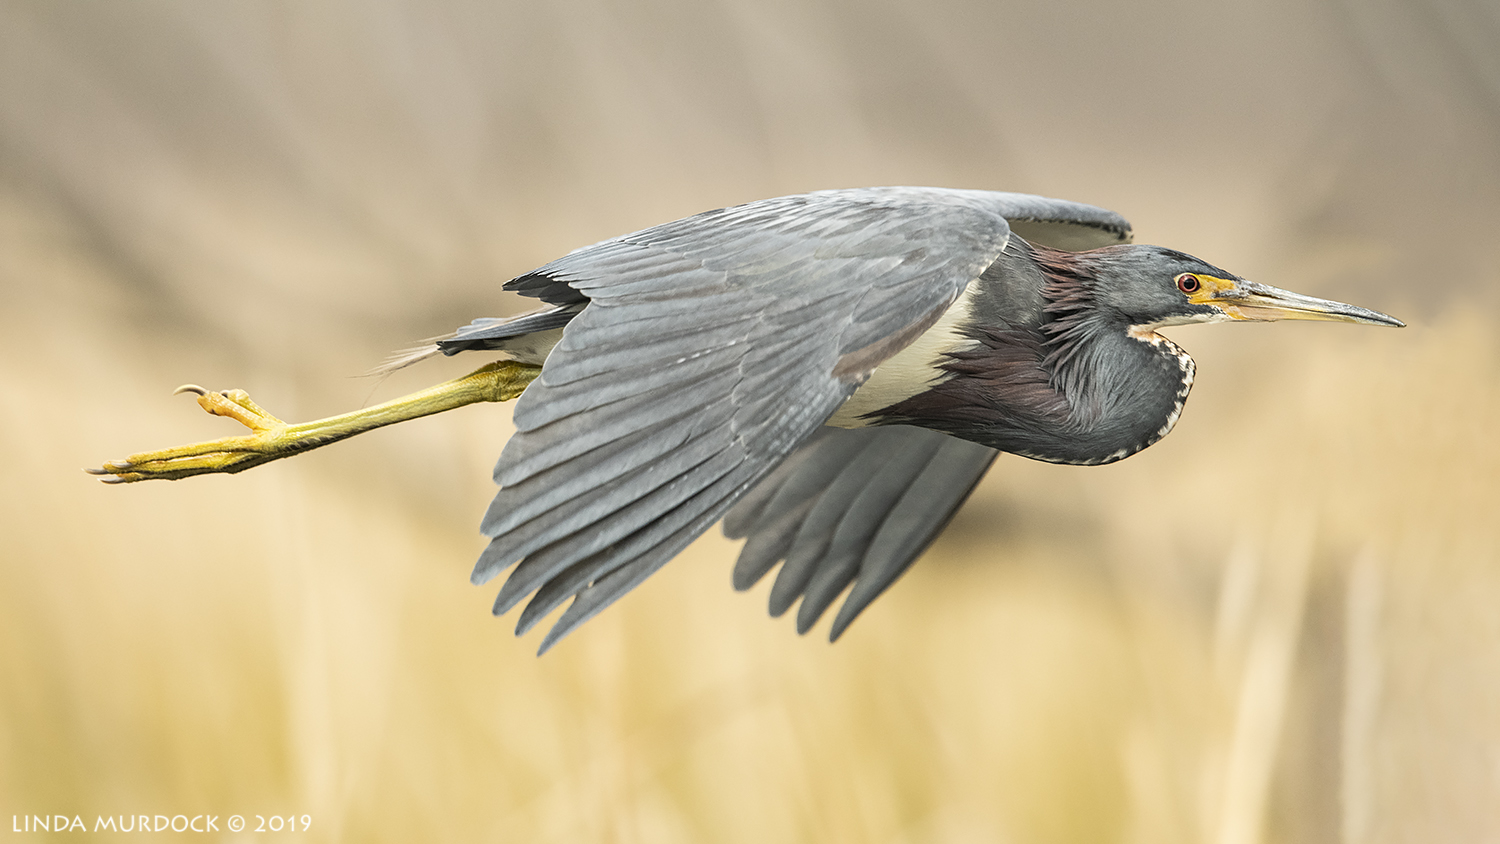 Tricolored Heron fly by Nikon D850 with Nikkor 500 f/4E VR with Nikon 1.4x TC ~ 1/2000 sec f/6.3 ISO 1600